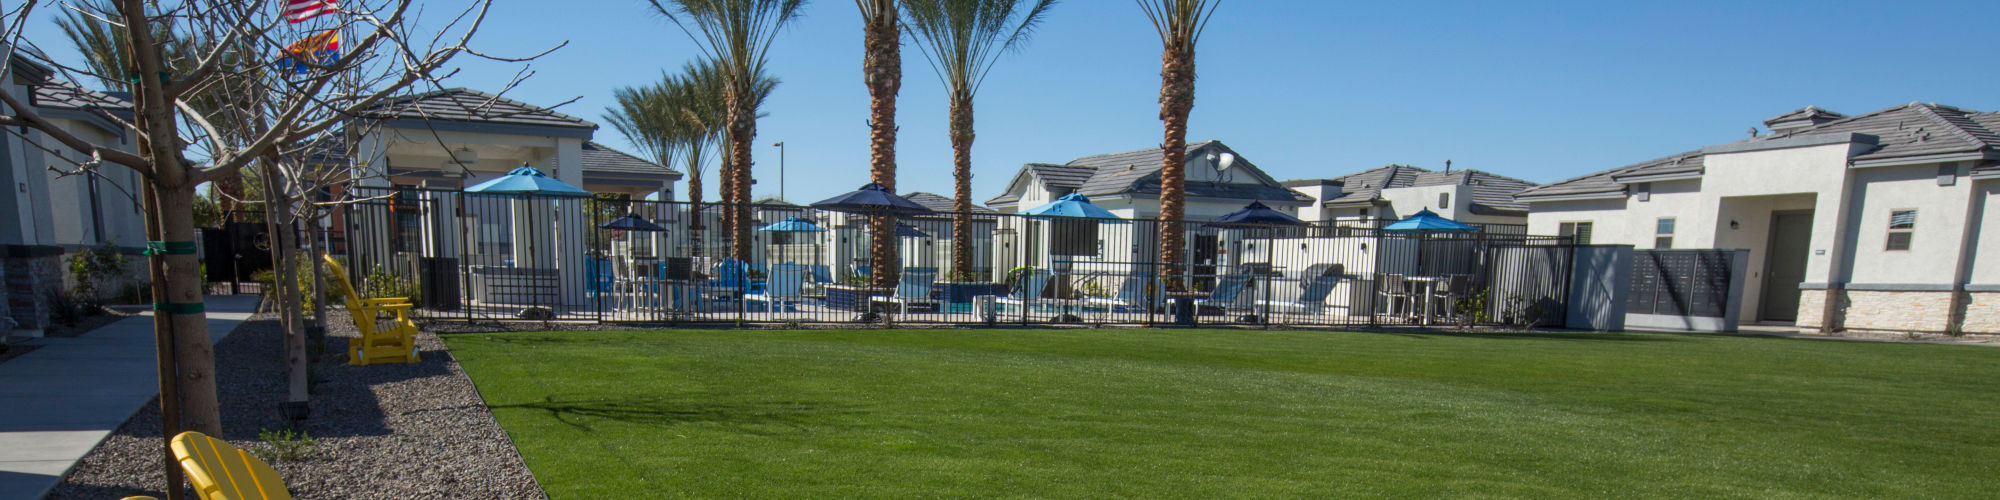 Reviews at Christopher Todd Communities At Country Place in Tolleson, Arizona